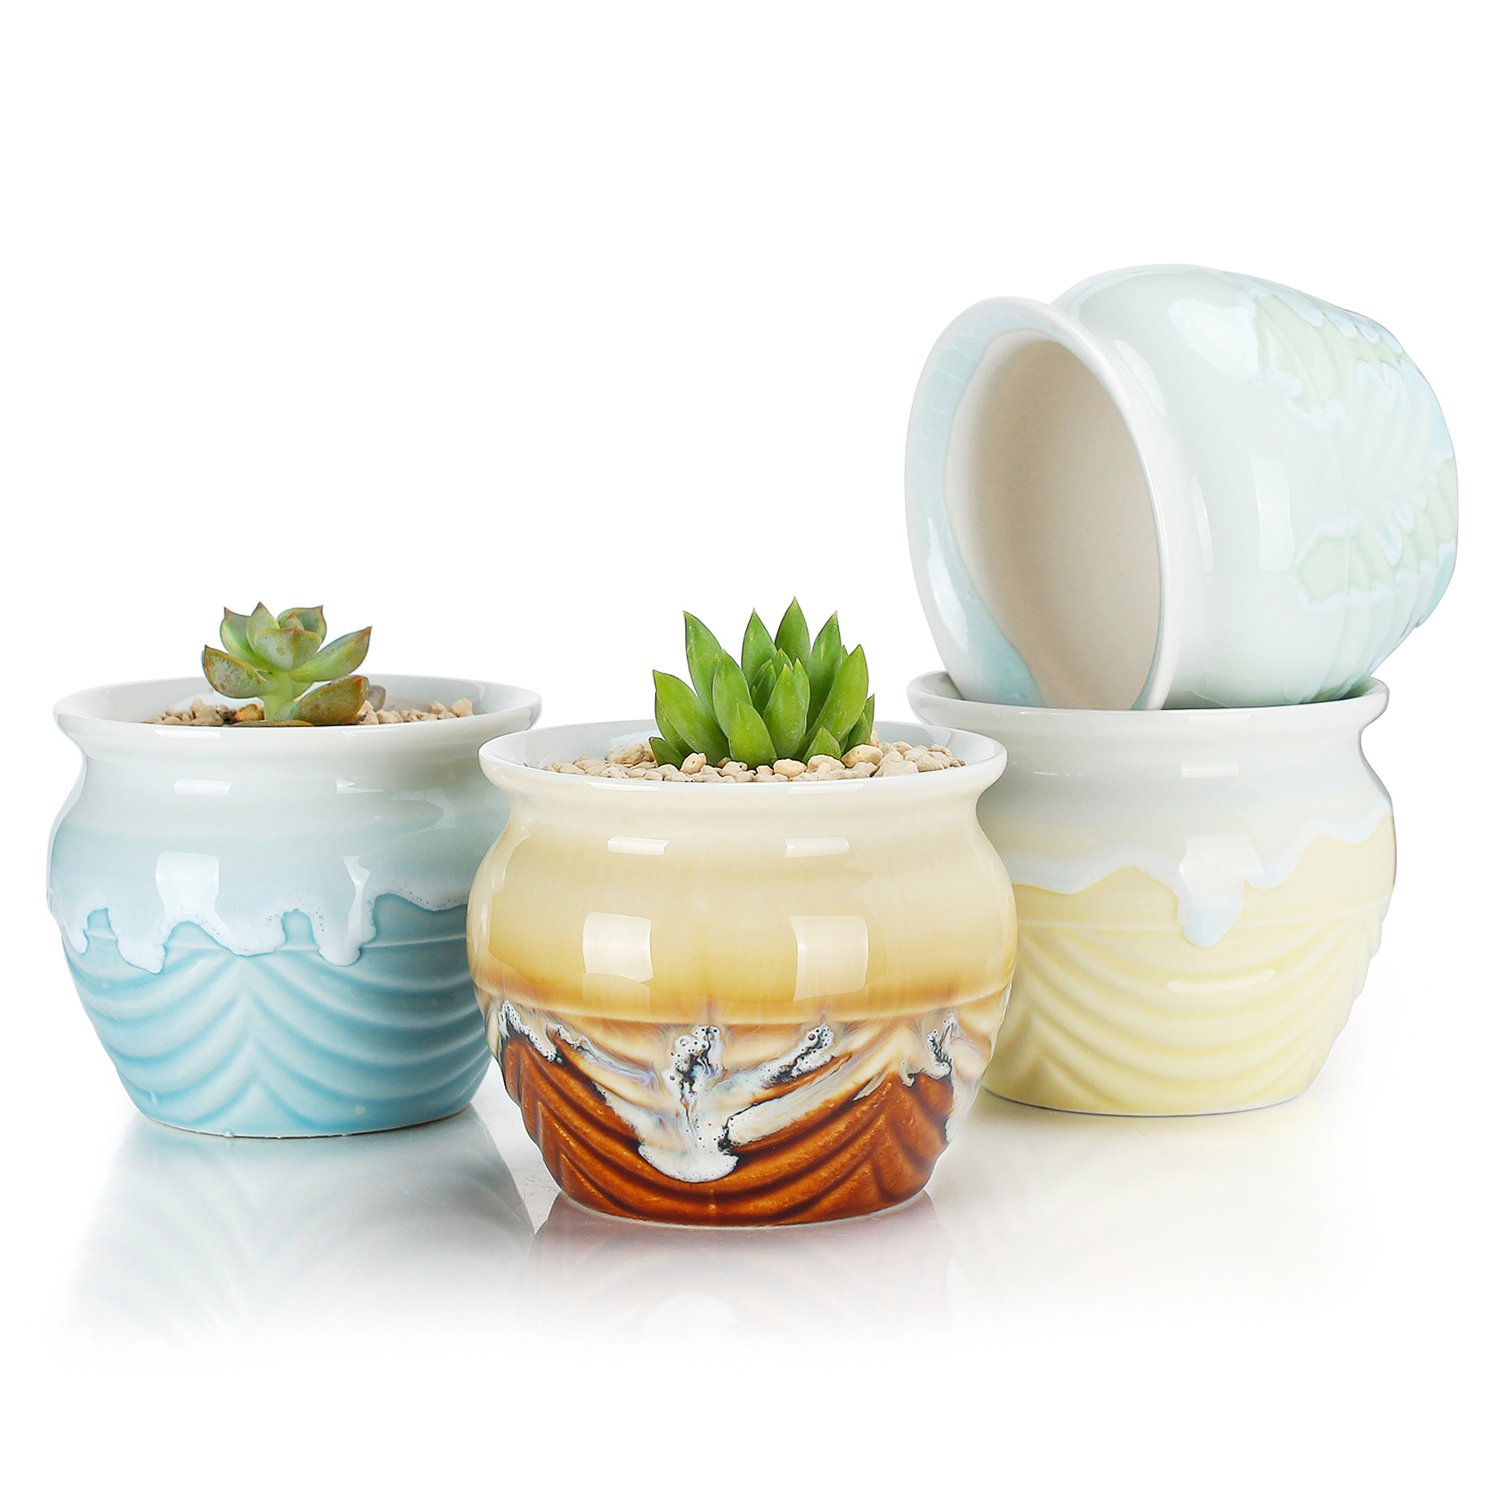 Greenaholics Succulent Plant Pots - 3.3 Inch Flowing Glaze Ceramic Pots, Cactus Planters, Flower Pots with Drainage Hole, 4 Colors, Set of 4